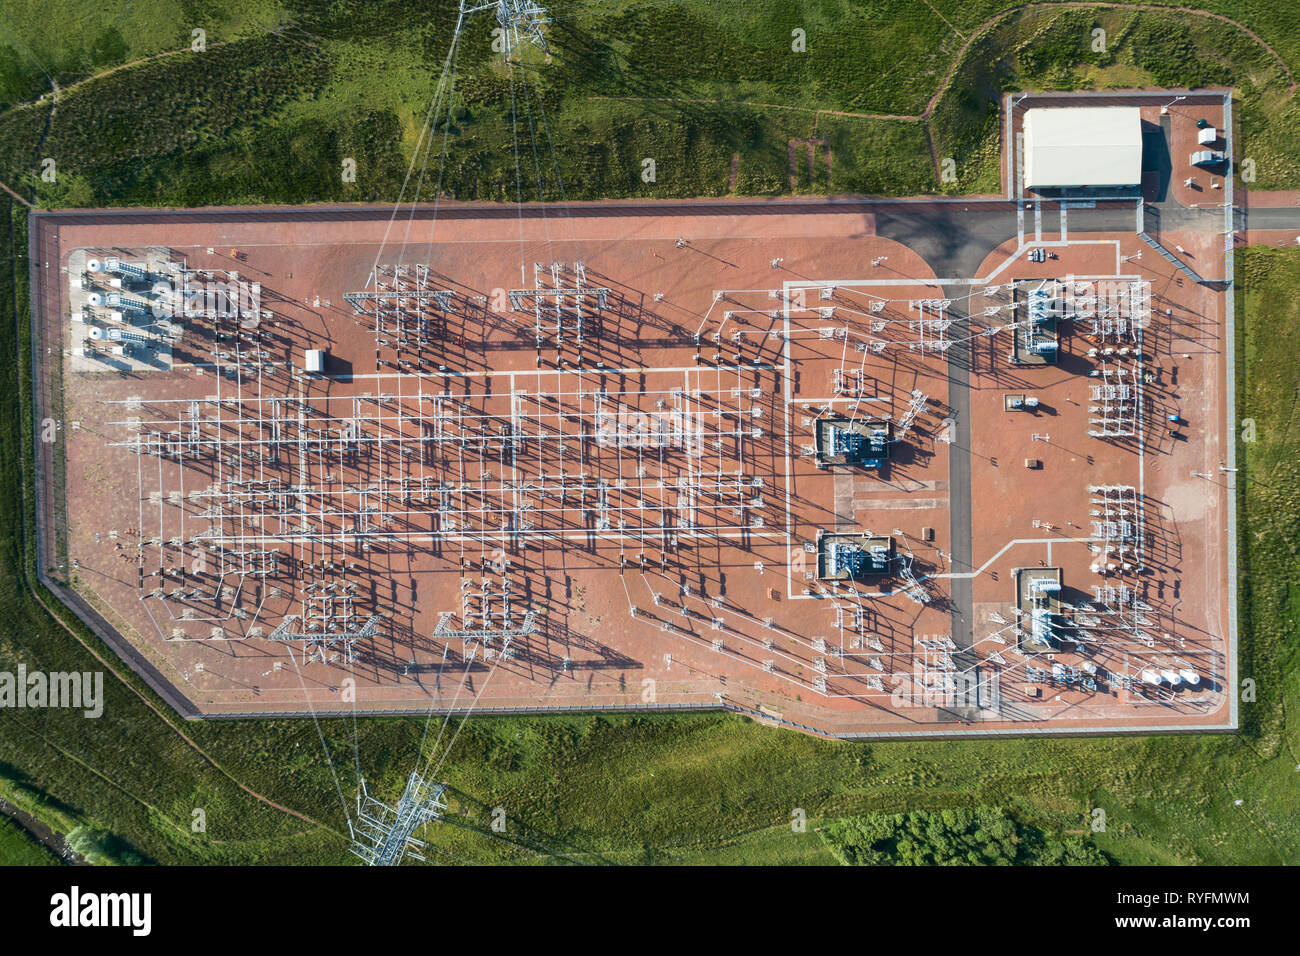 Aerial image of electricity substation for the Clyde wind Farm near the village of Elvanfoot in South Lanarkshire. - Stock Image